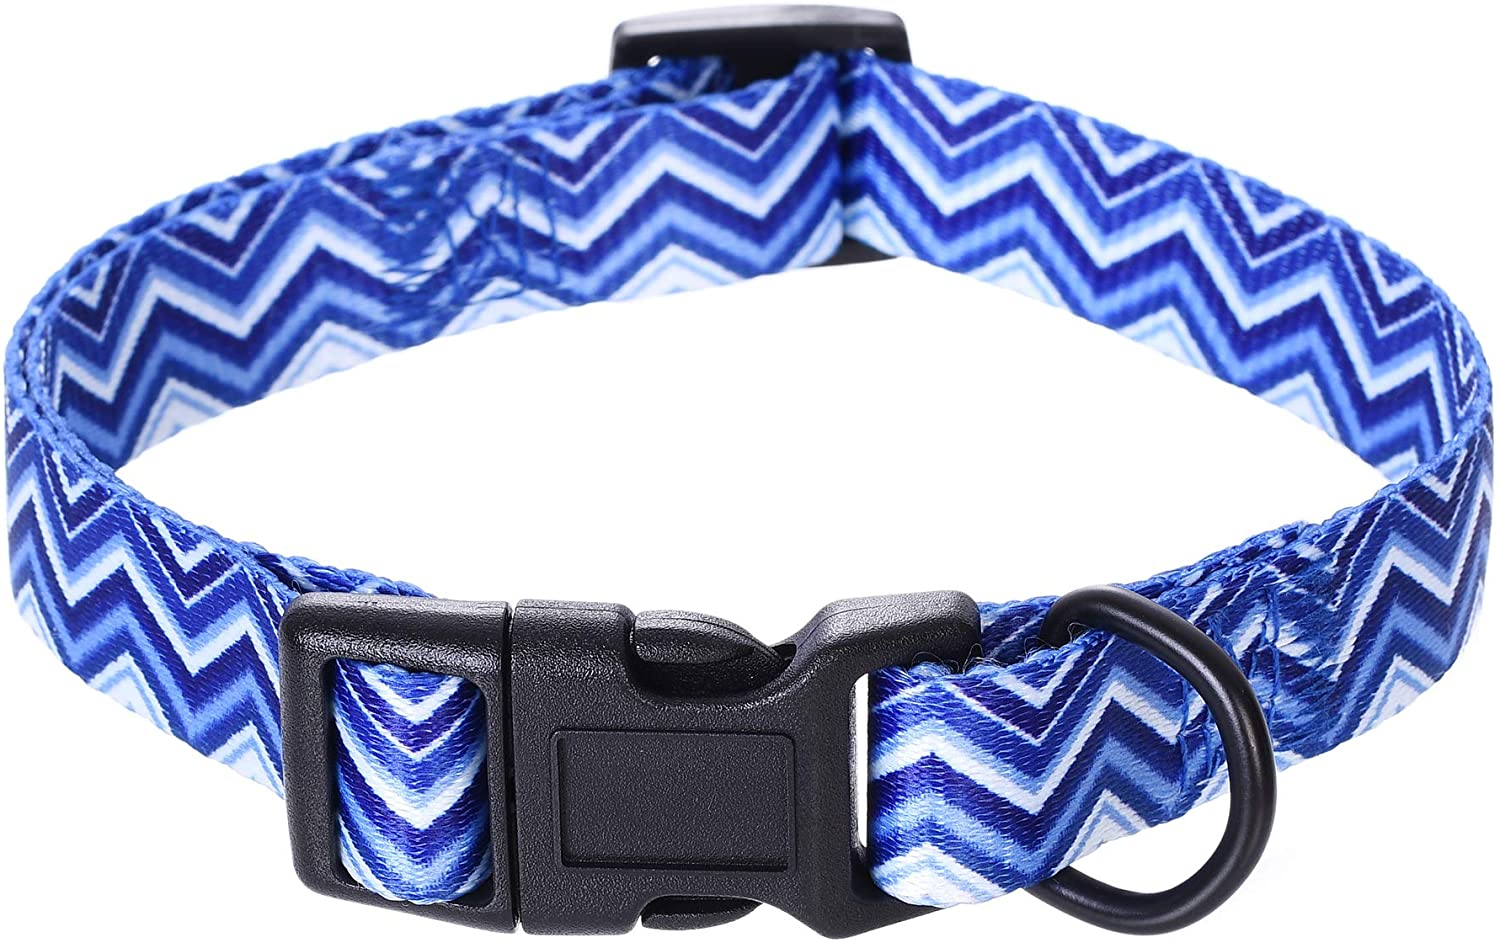 Mile High Life | Geometric Ocean Wavy Pattern | Soft Poly Cotton Fabric | Black Buckle Dog Collar with D Ring| We Donate to Dog Rescues